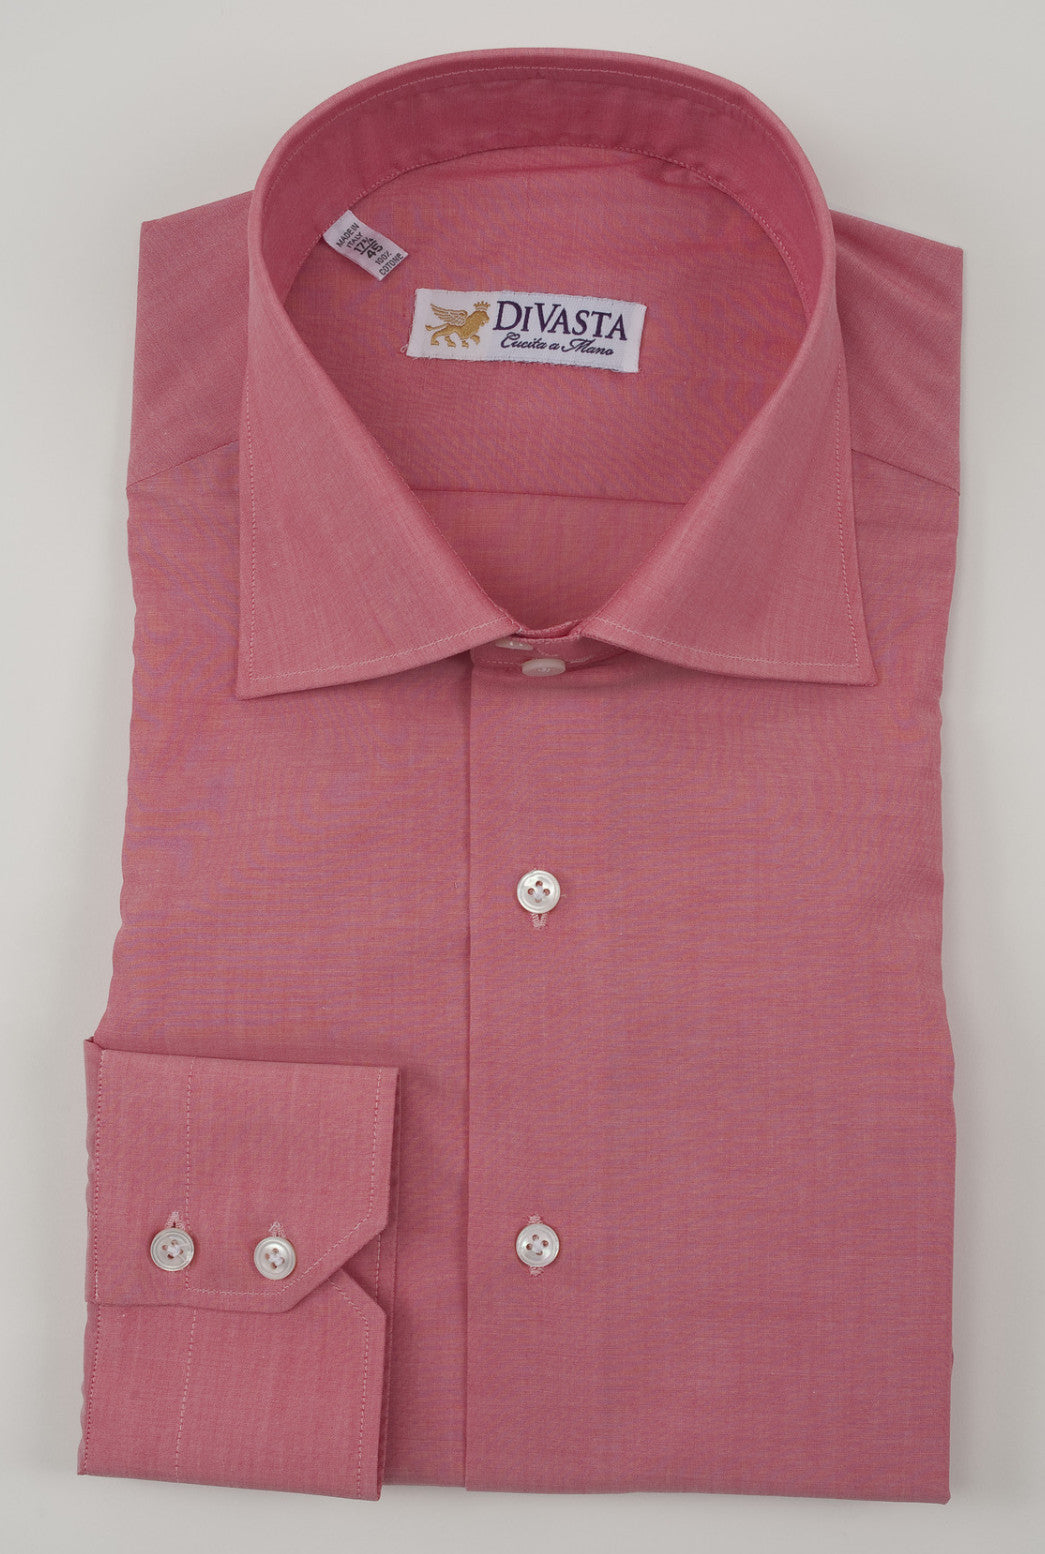 Men's Dress Shirt-M2 DIV20